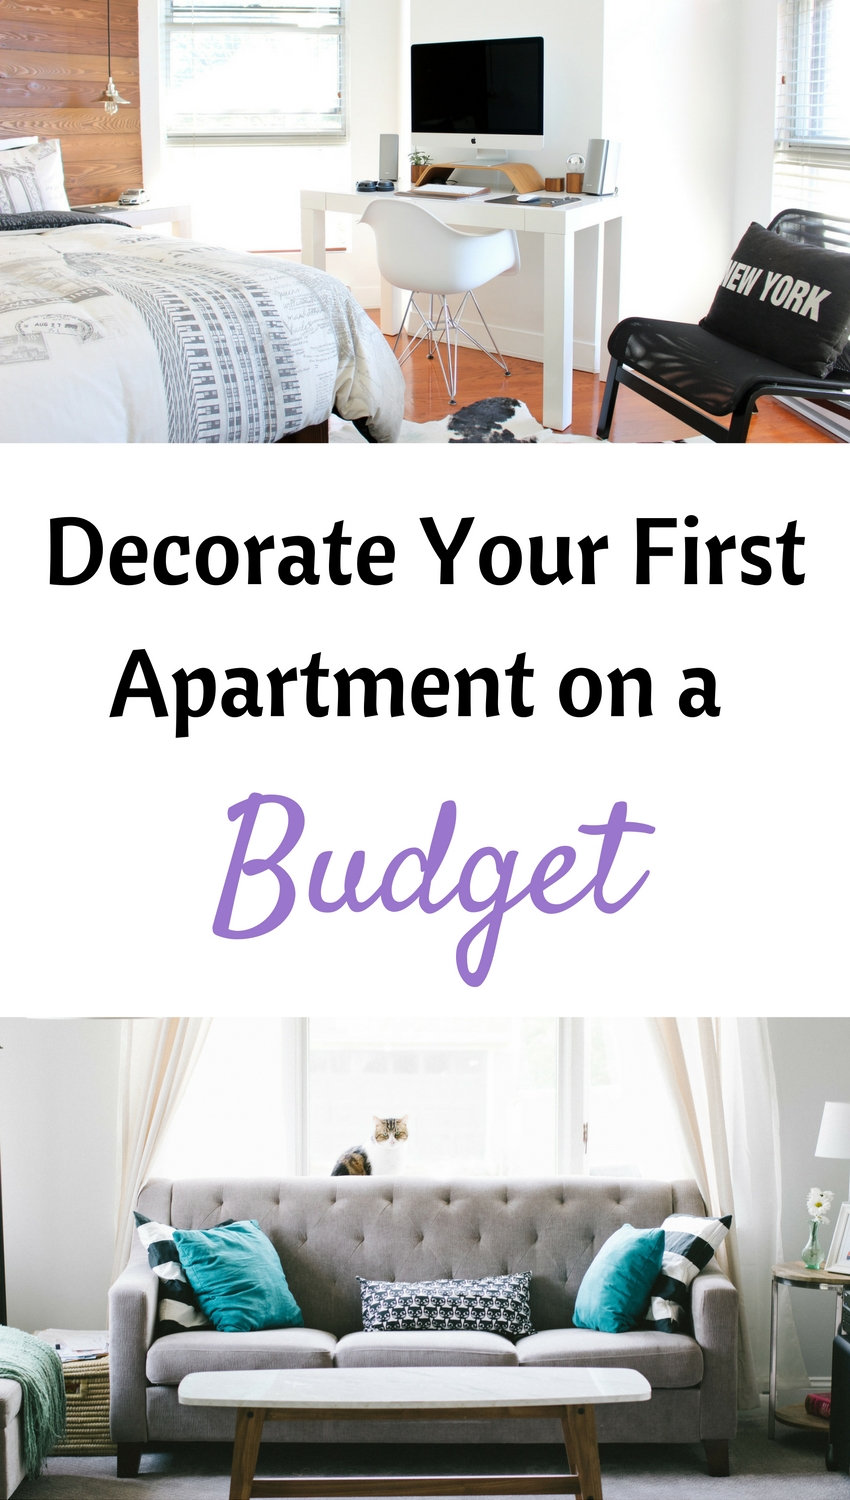 How to decorate your first apartment on a budget for Furnish an apartment on a budget